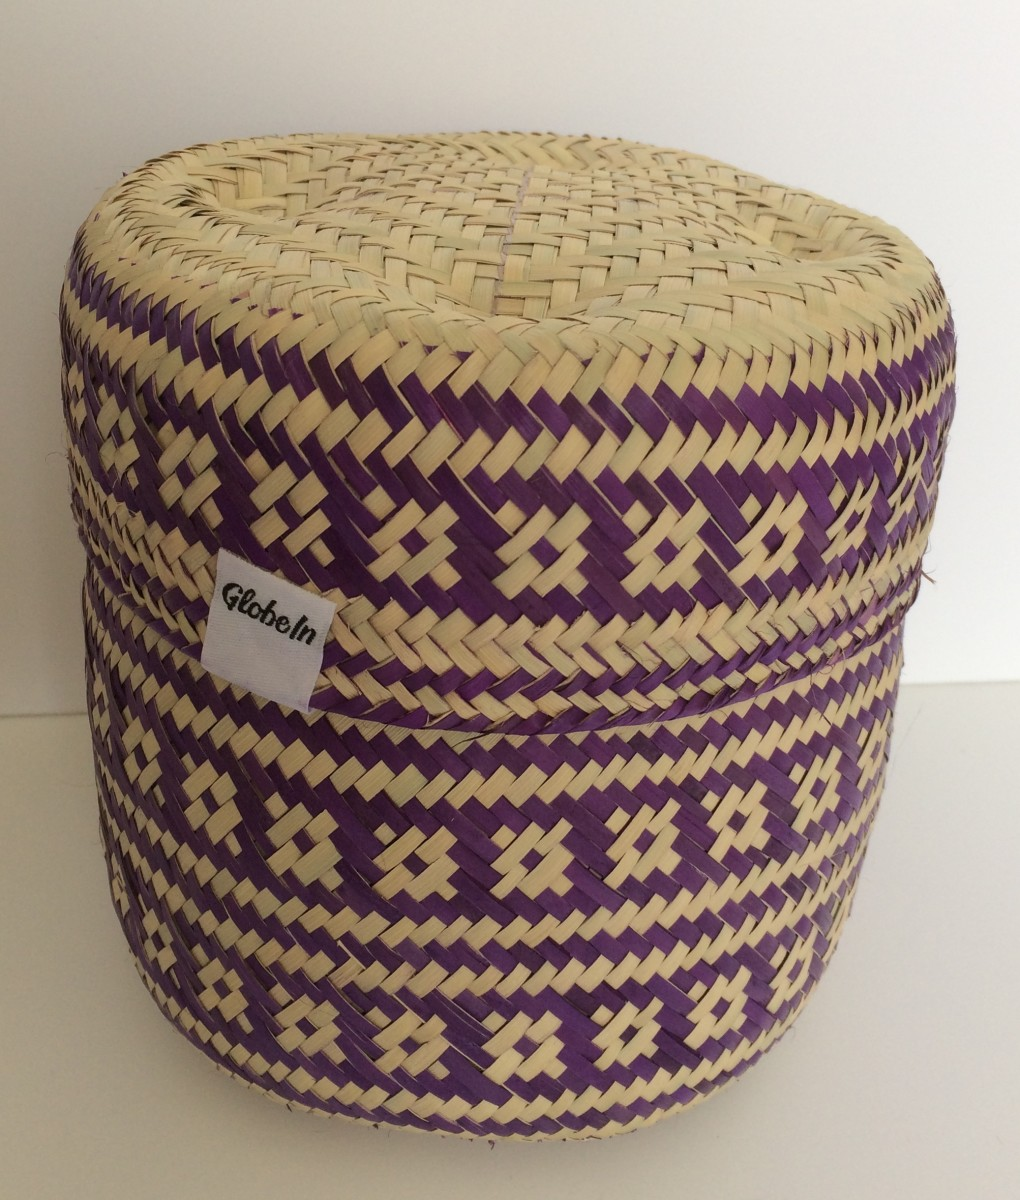 Handwoven basket from Mexico